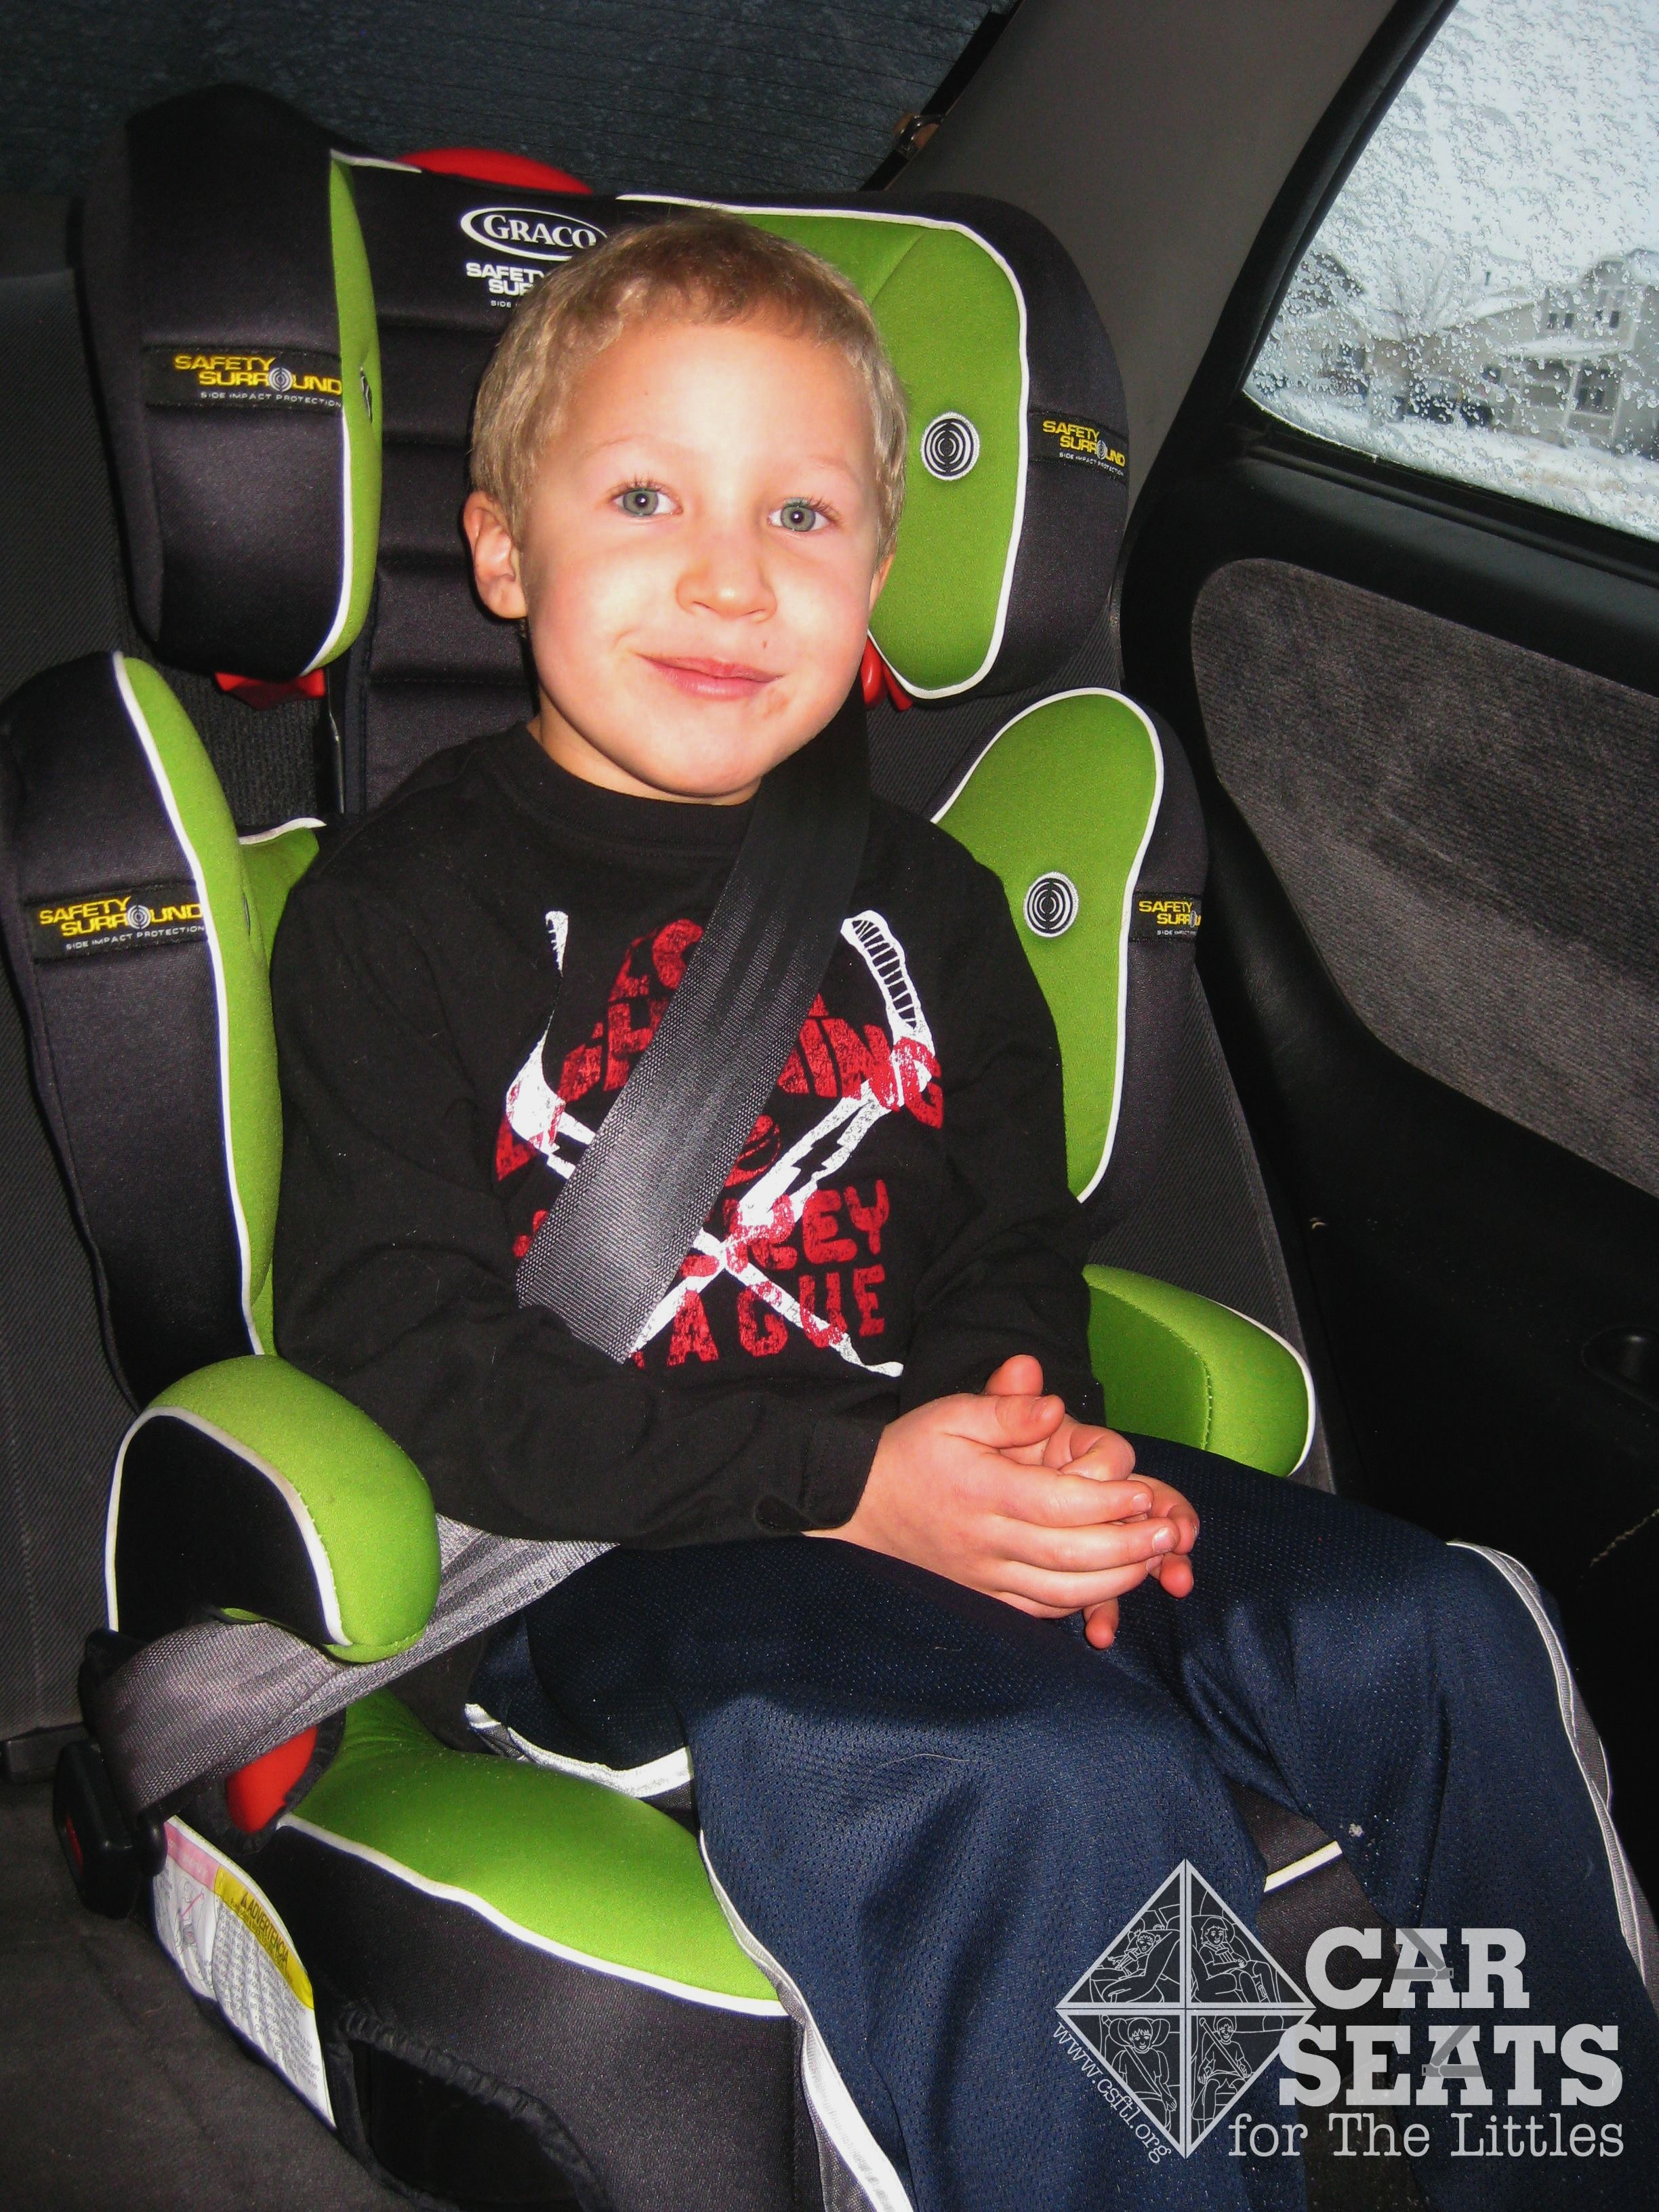 When is my child ready for a booster seat? And why